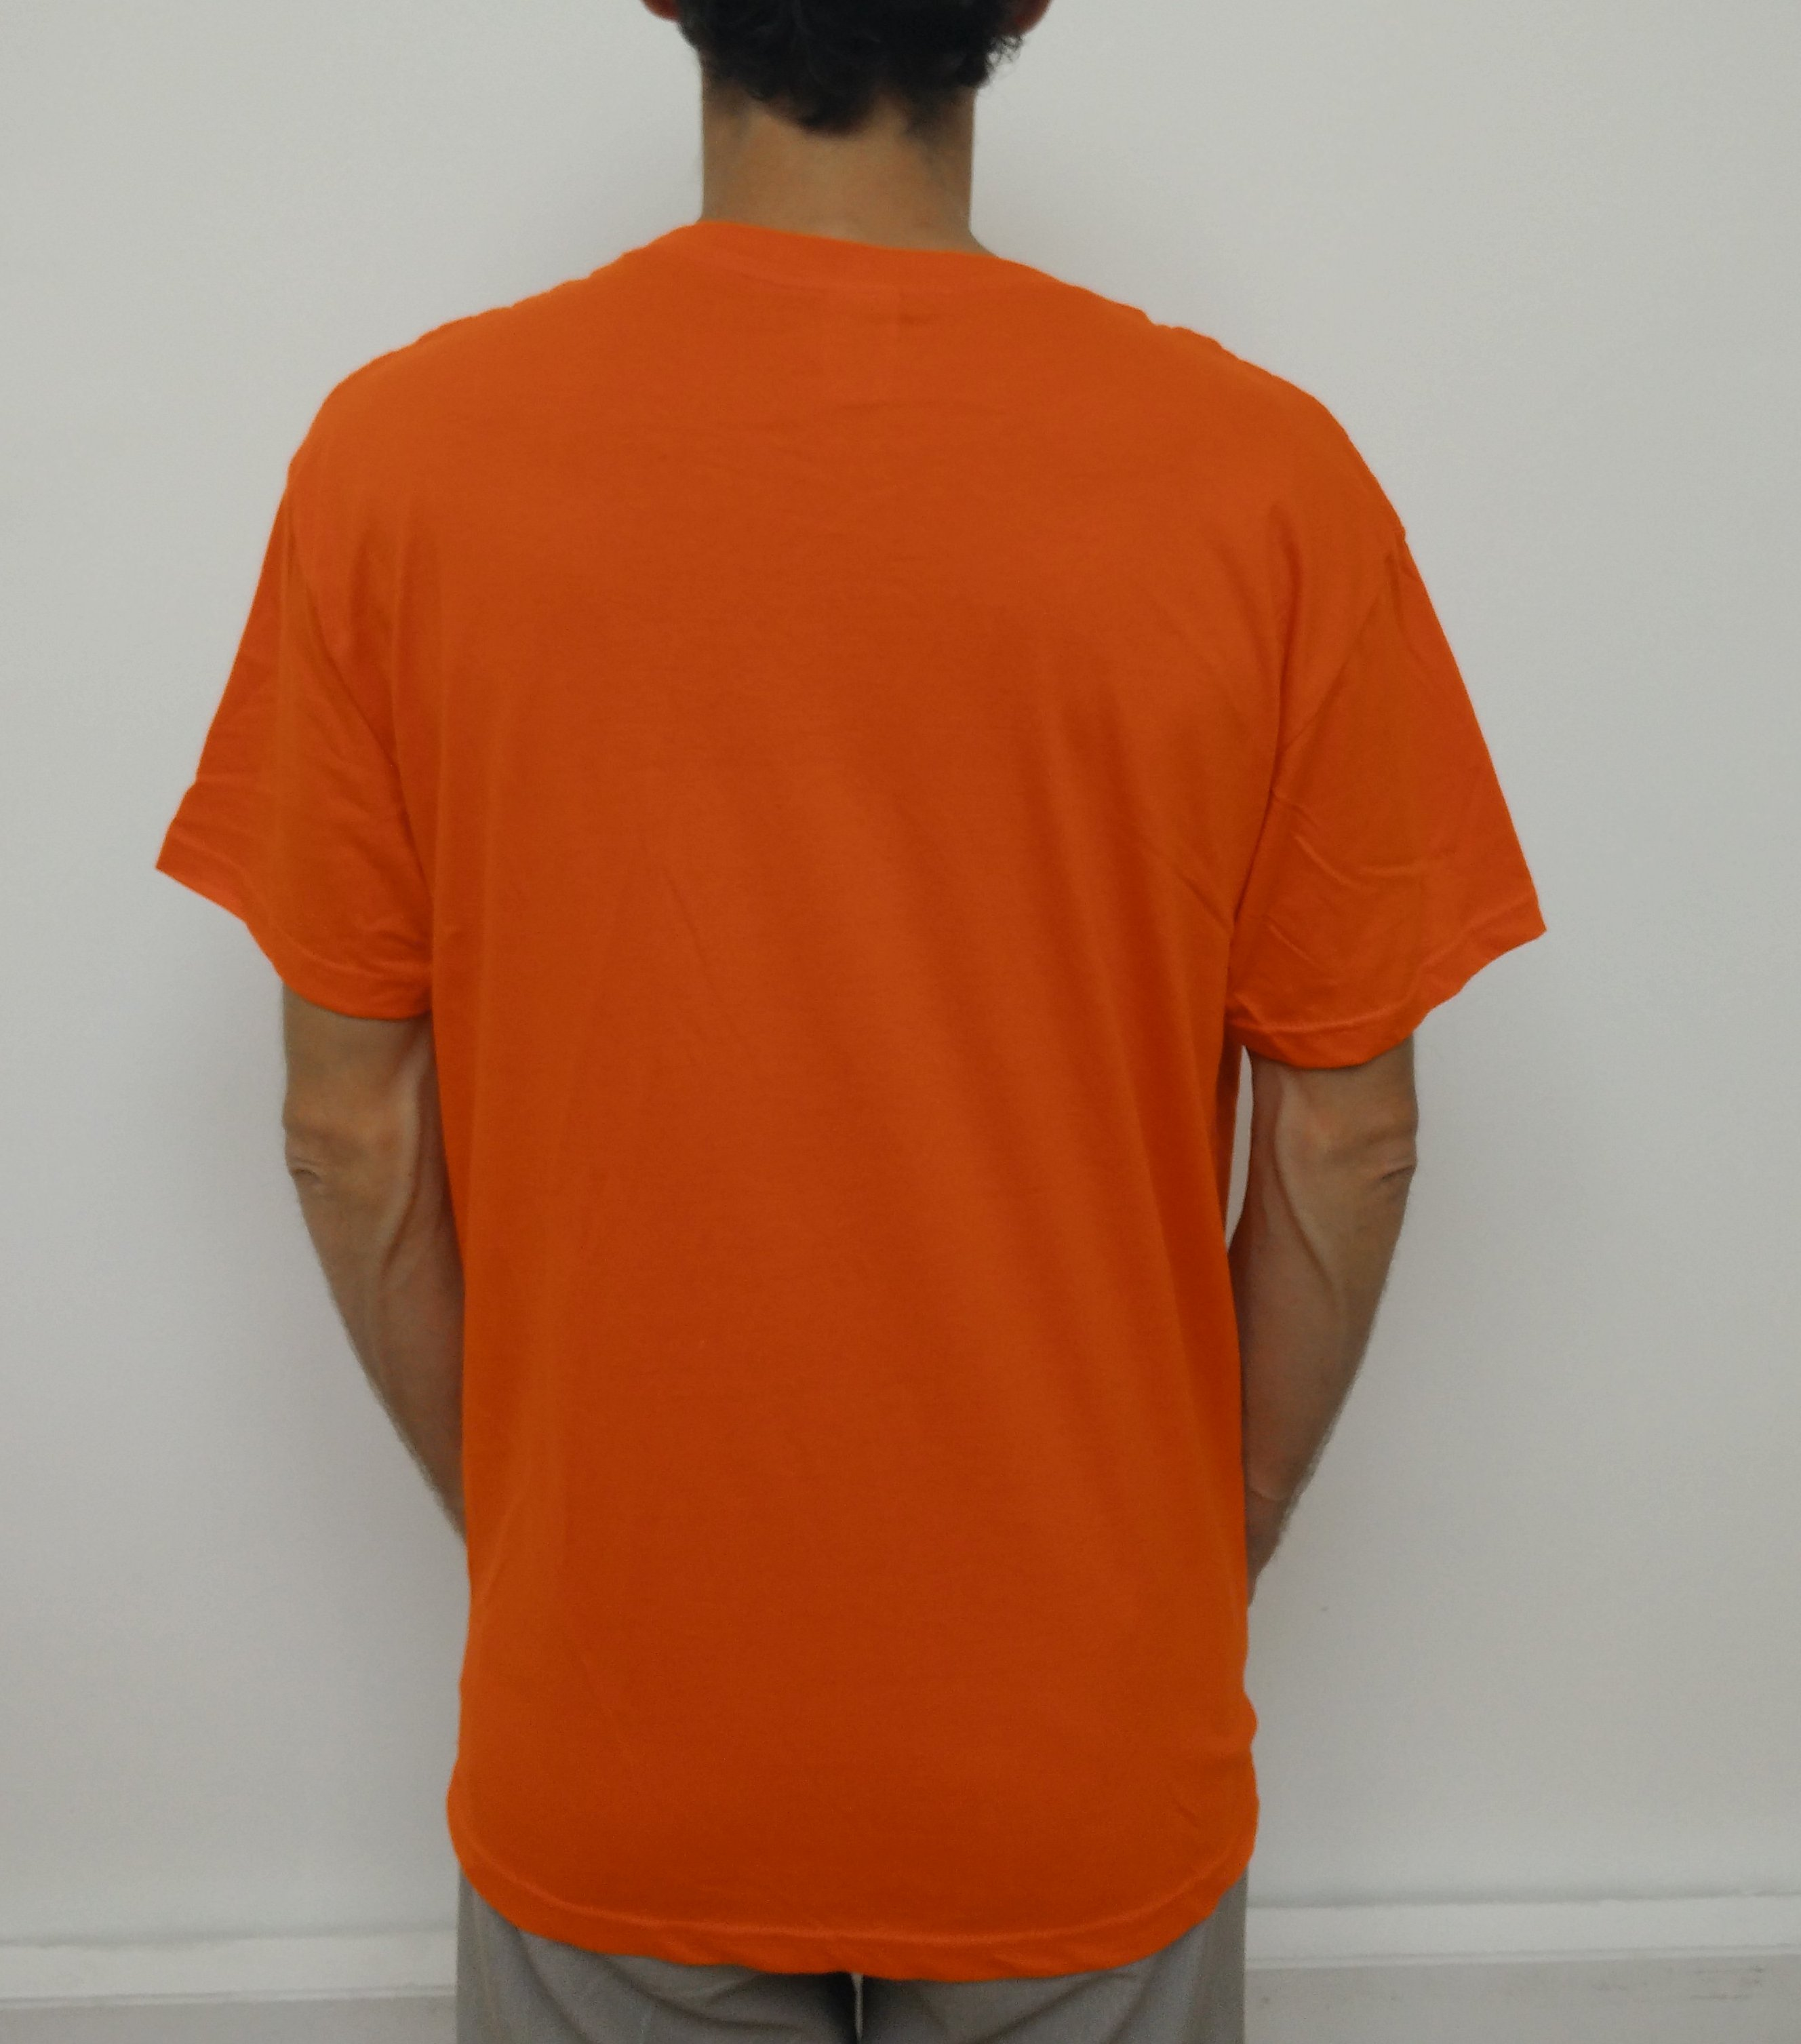 t-shirt orange dos ordissimo